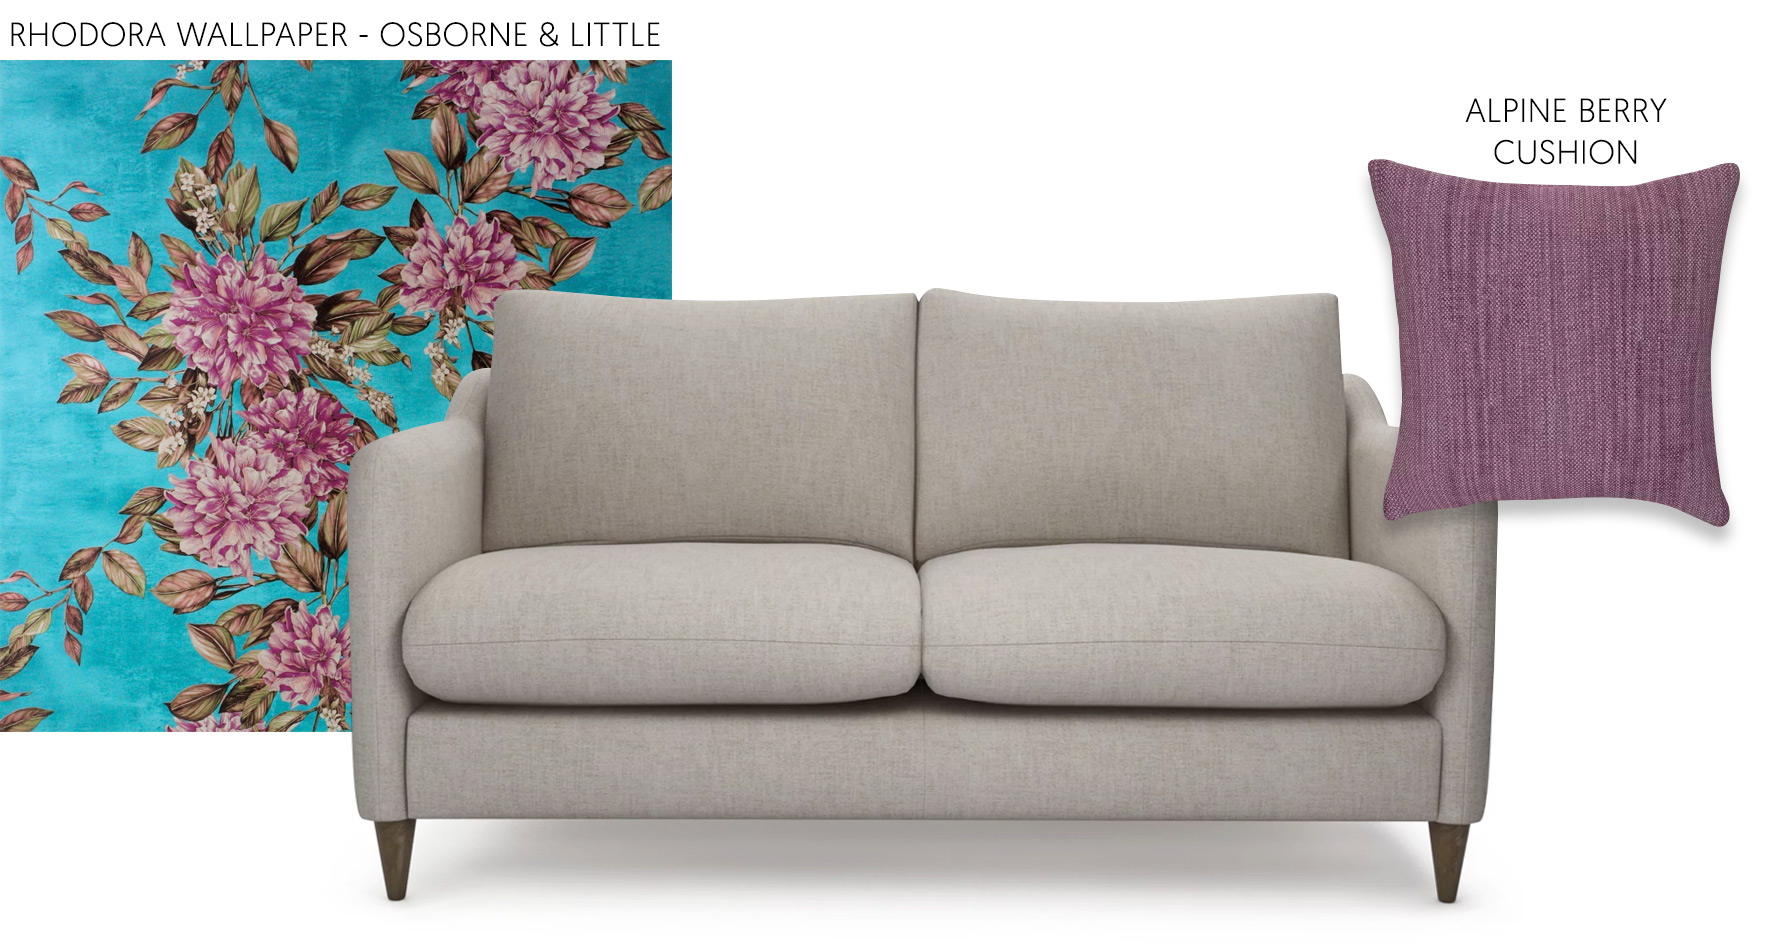 Accessorising a neutral sofa with Osborne & Little Wallpaper